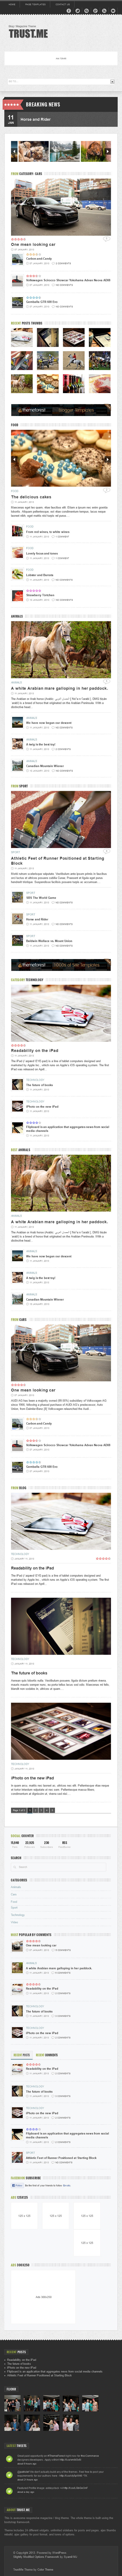 TrustMe - Responsive WordPress Magazine / Blog - Home Page Mobile